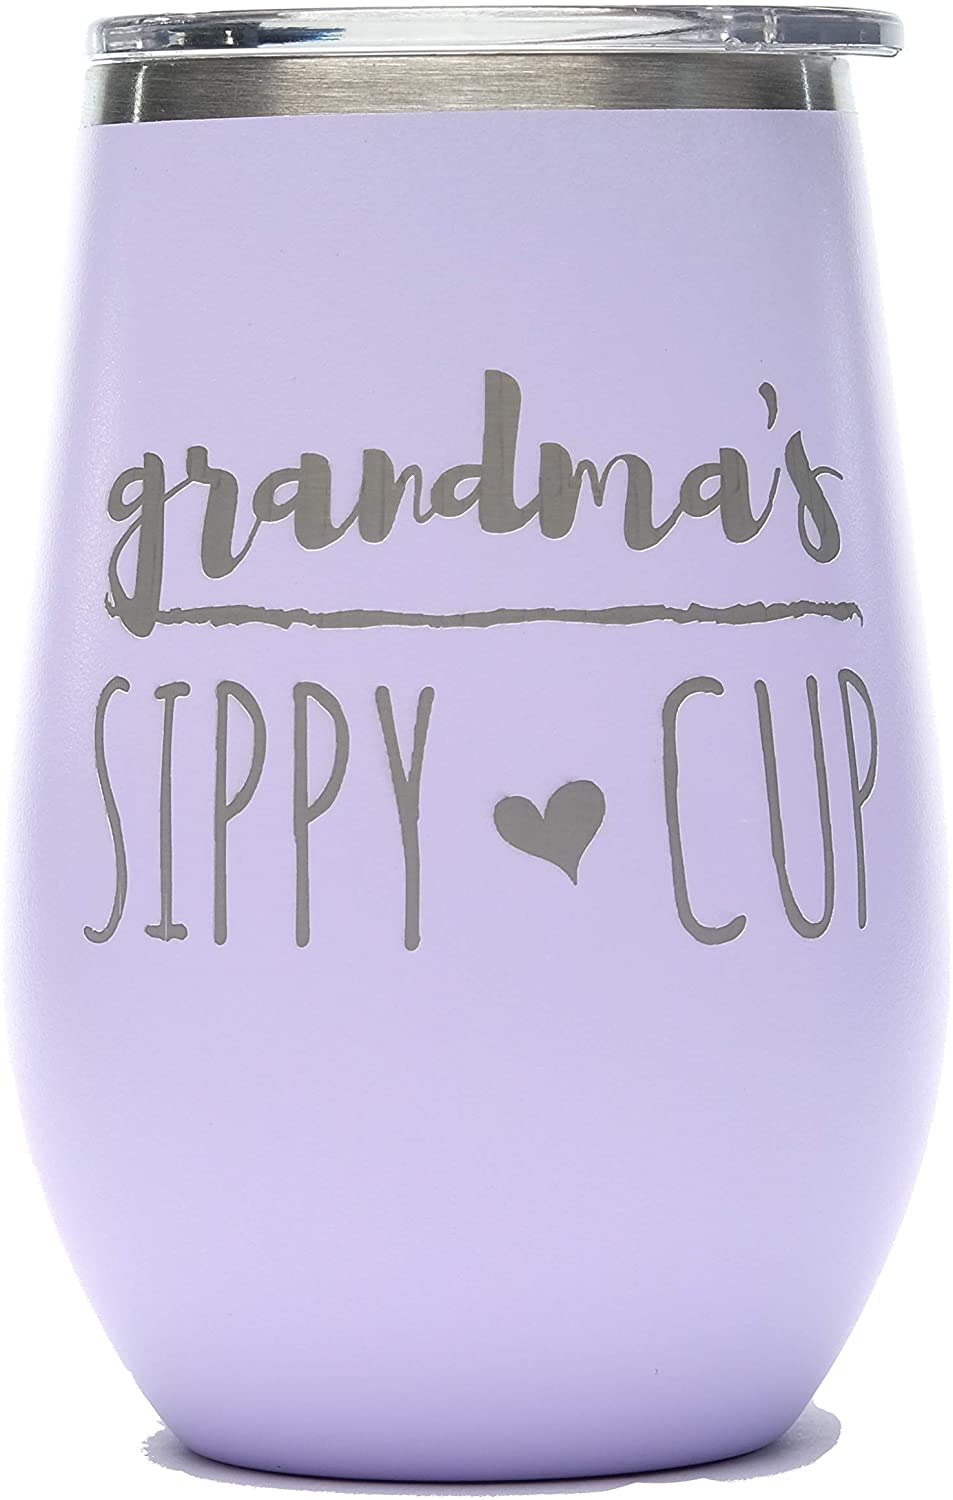 Grandma's Sippy Cup 12 oz. Lavender Powder Coating Stainless Steel Skinny Glass Wine Tumbler - Double Wall Vaccum Insulated